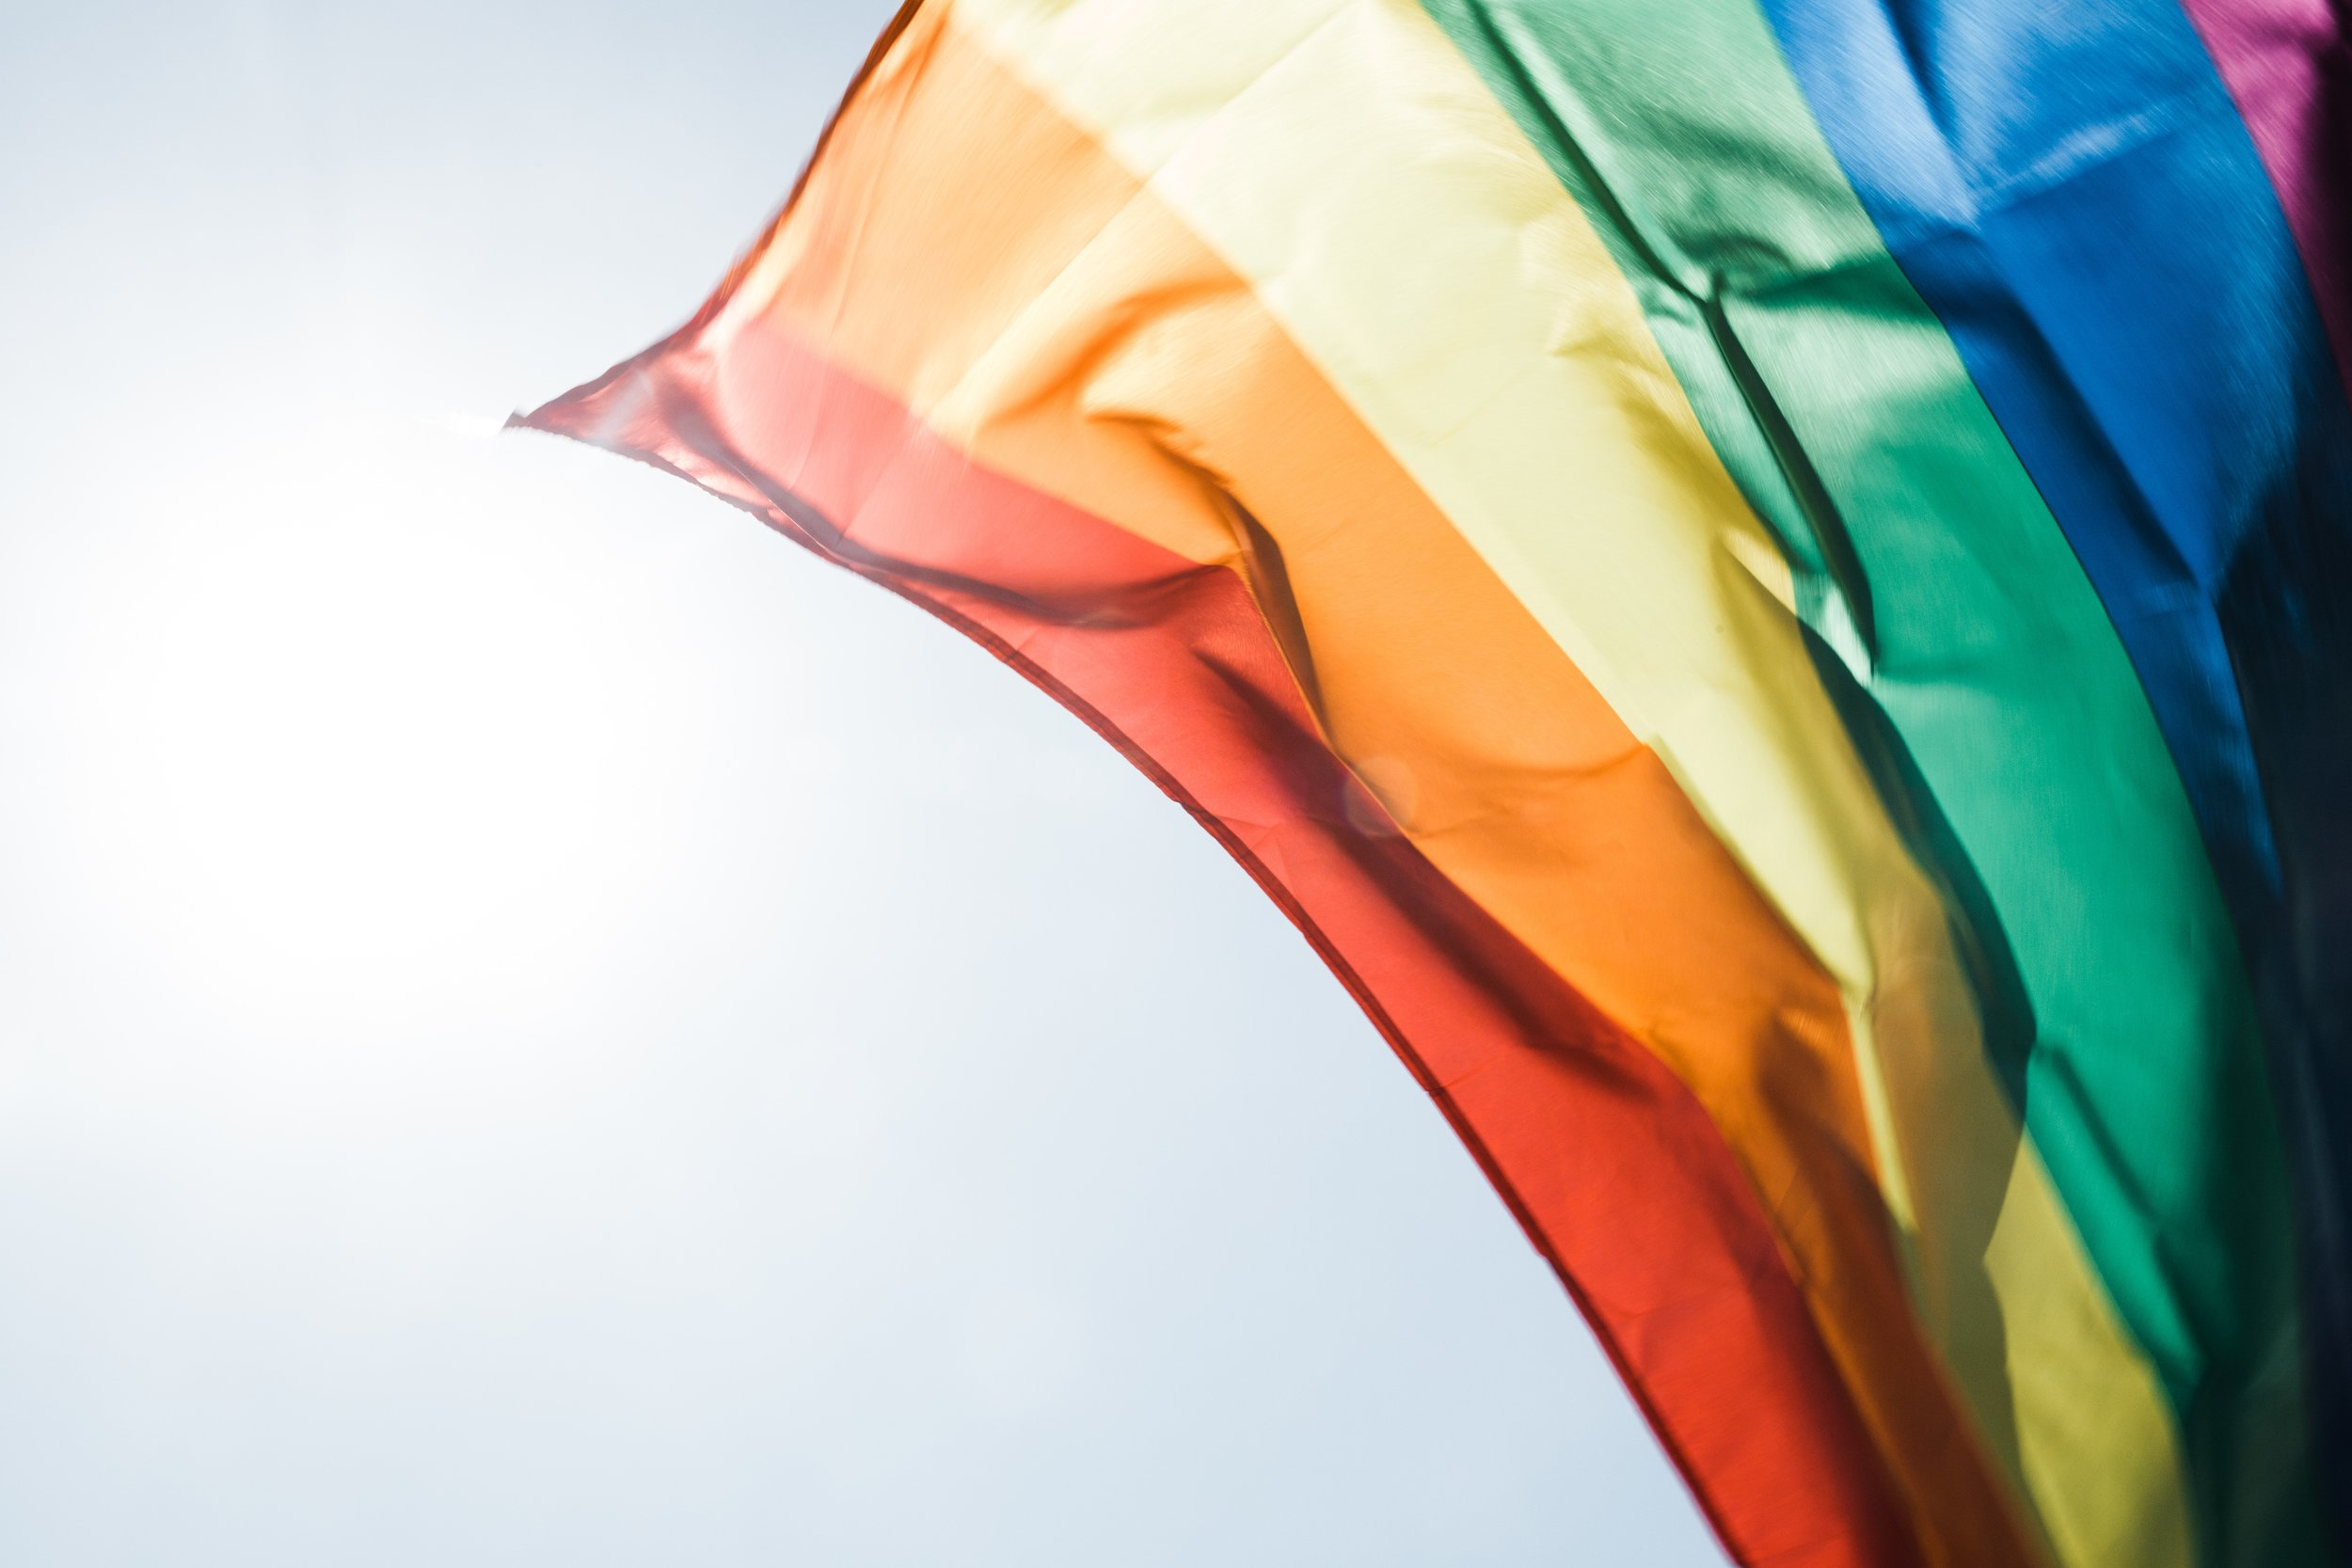 Asheville LGBT Entrepreneurs Group - If you're LGBT+ and identify yourself as an entrepreneur anywhere from aspiring to established, we invite you to be a part in building a community network of LGBT entrepreneurs. Join us for an informal space to network, socialize, and learn from one another.